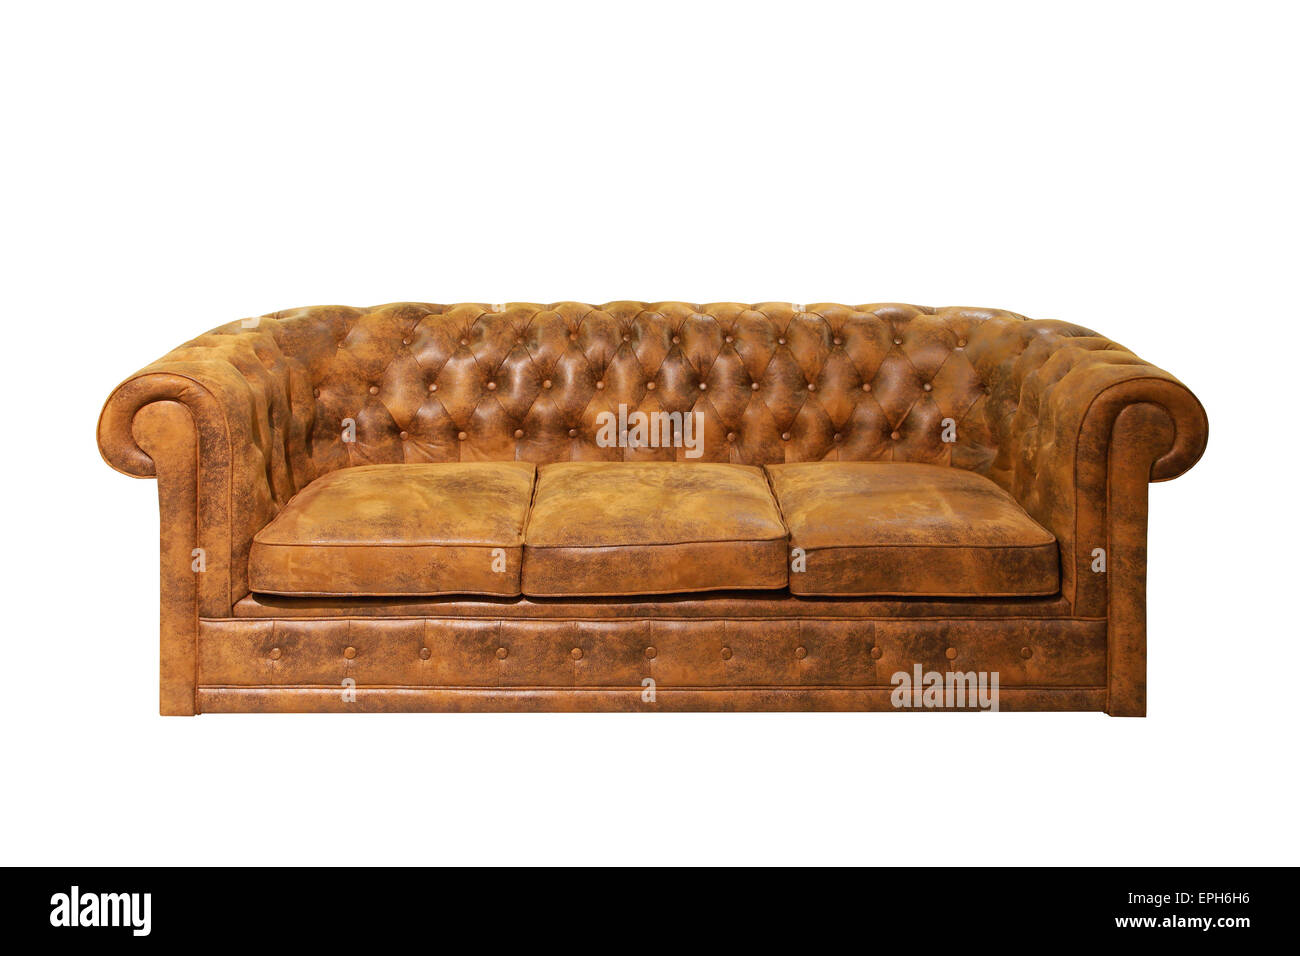 Chesterfield Lounge Chesterfield Sofa Stock Photos Chesterfield Sofa Stock Images